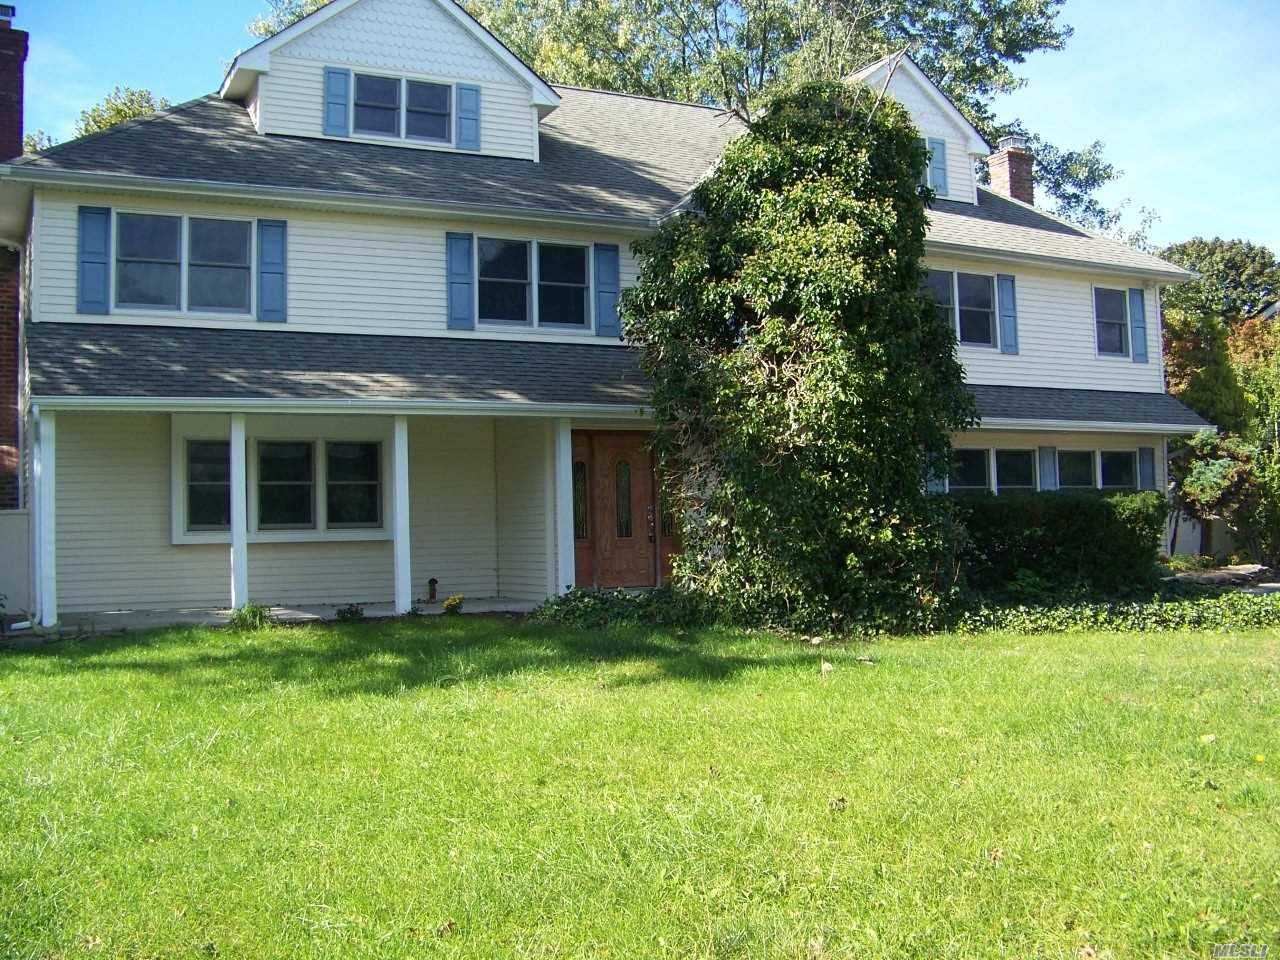 Spacious Renovated Colonial With 4 Bedrooms And 2.5 Bath. Updated Kitchen And Baths, New Carpet, Freshly Painted, Large Kitchen With Dining Area. Ig Pool. Just Unpack You Bags!Close To Shopping, Transportation And Major Roadways